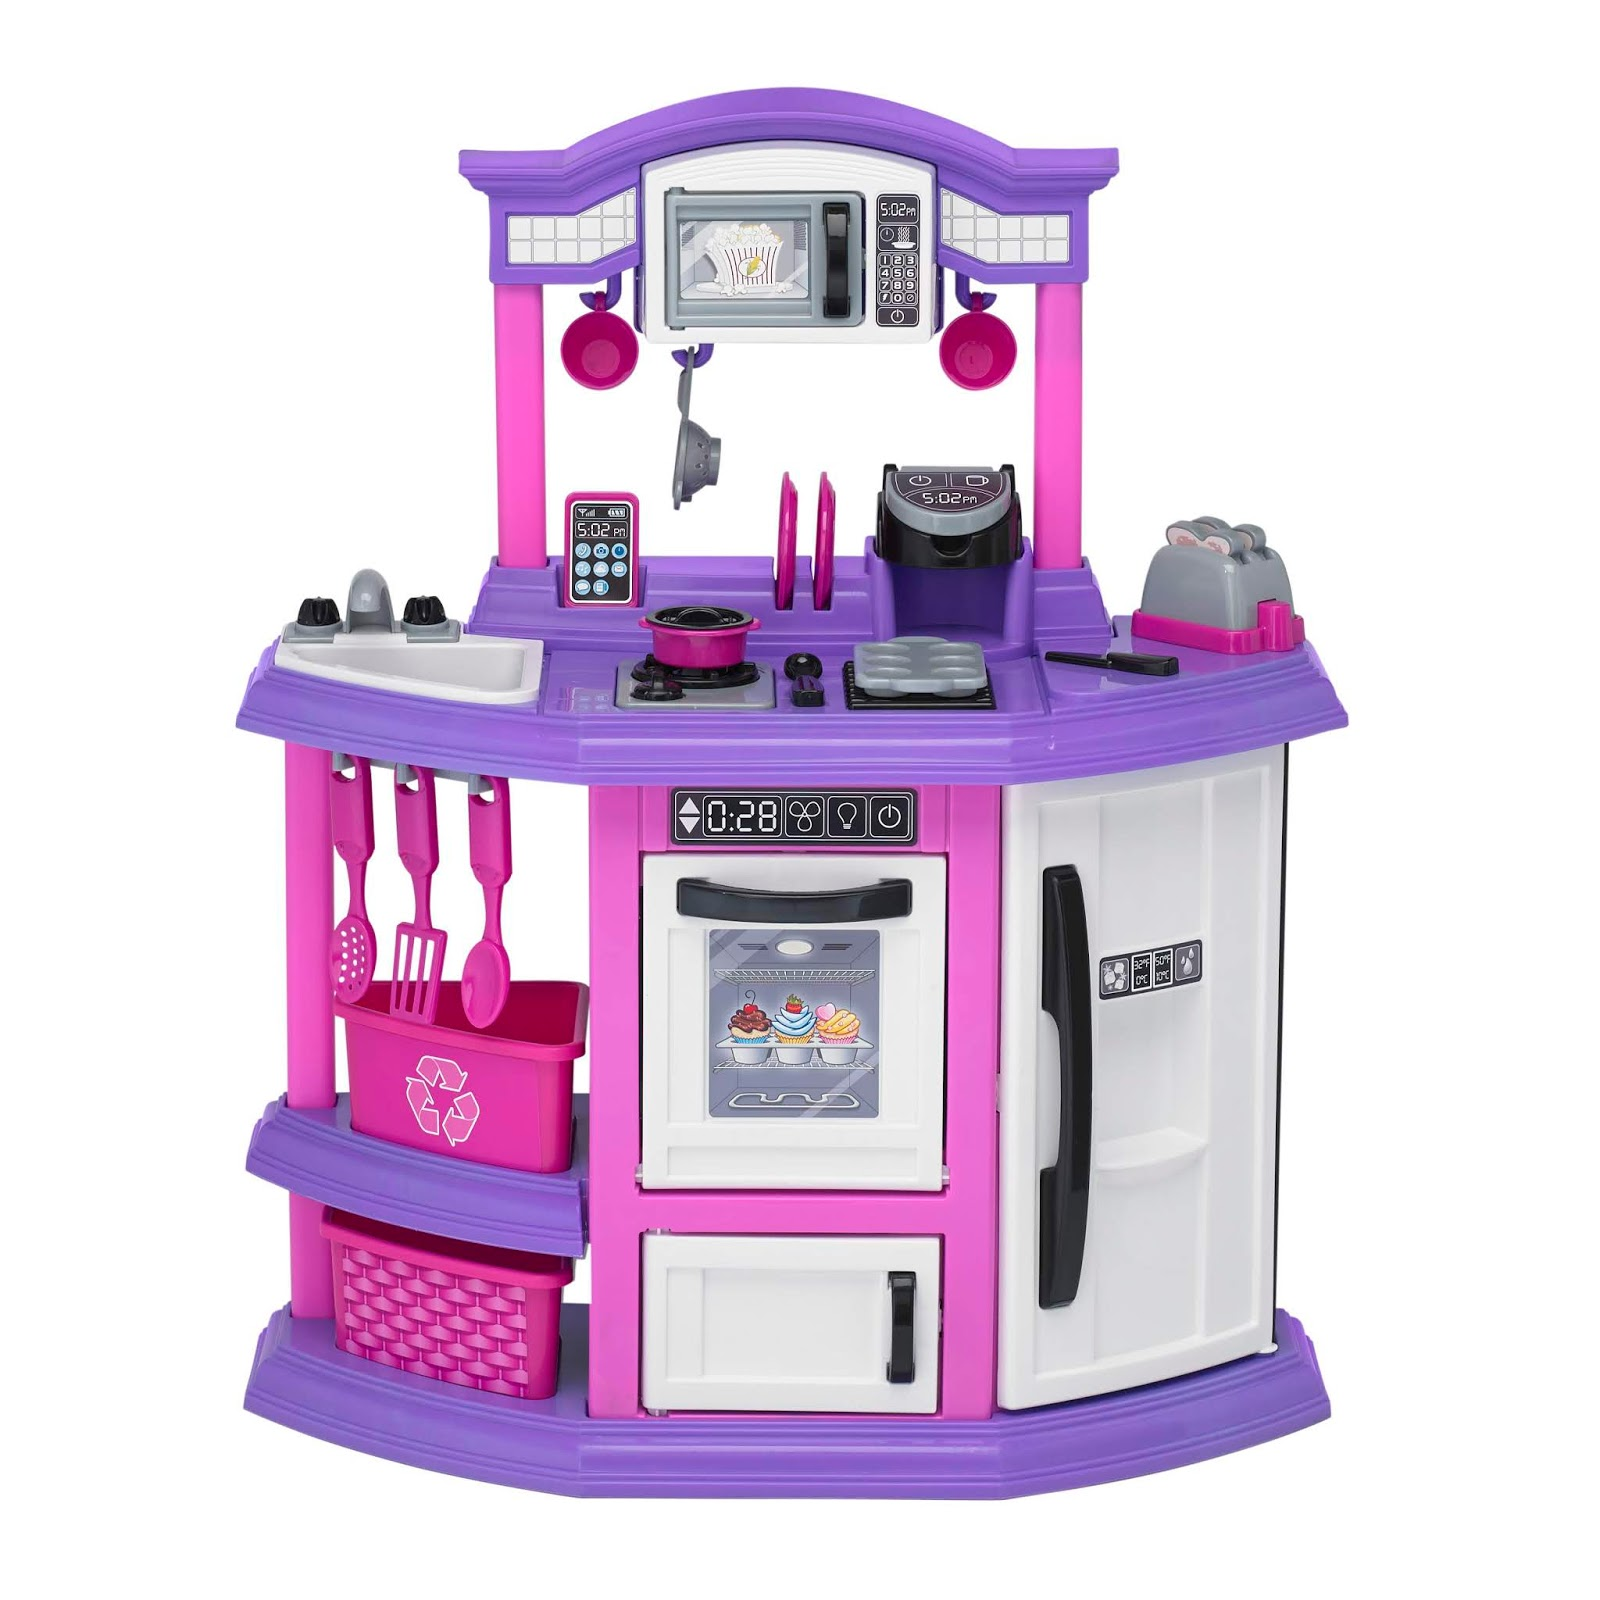 American Plastic Toys Baker\'s Kitchen $25.52 (was $41.98) at ...